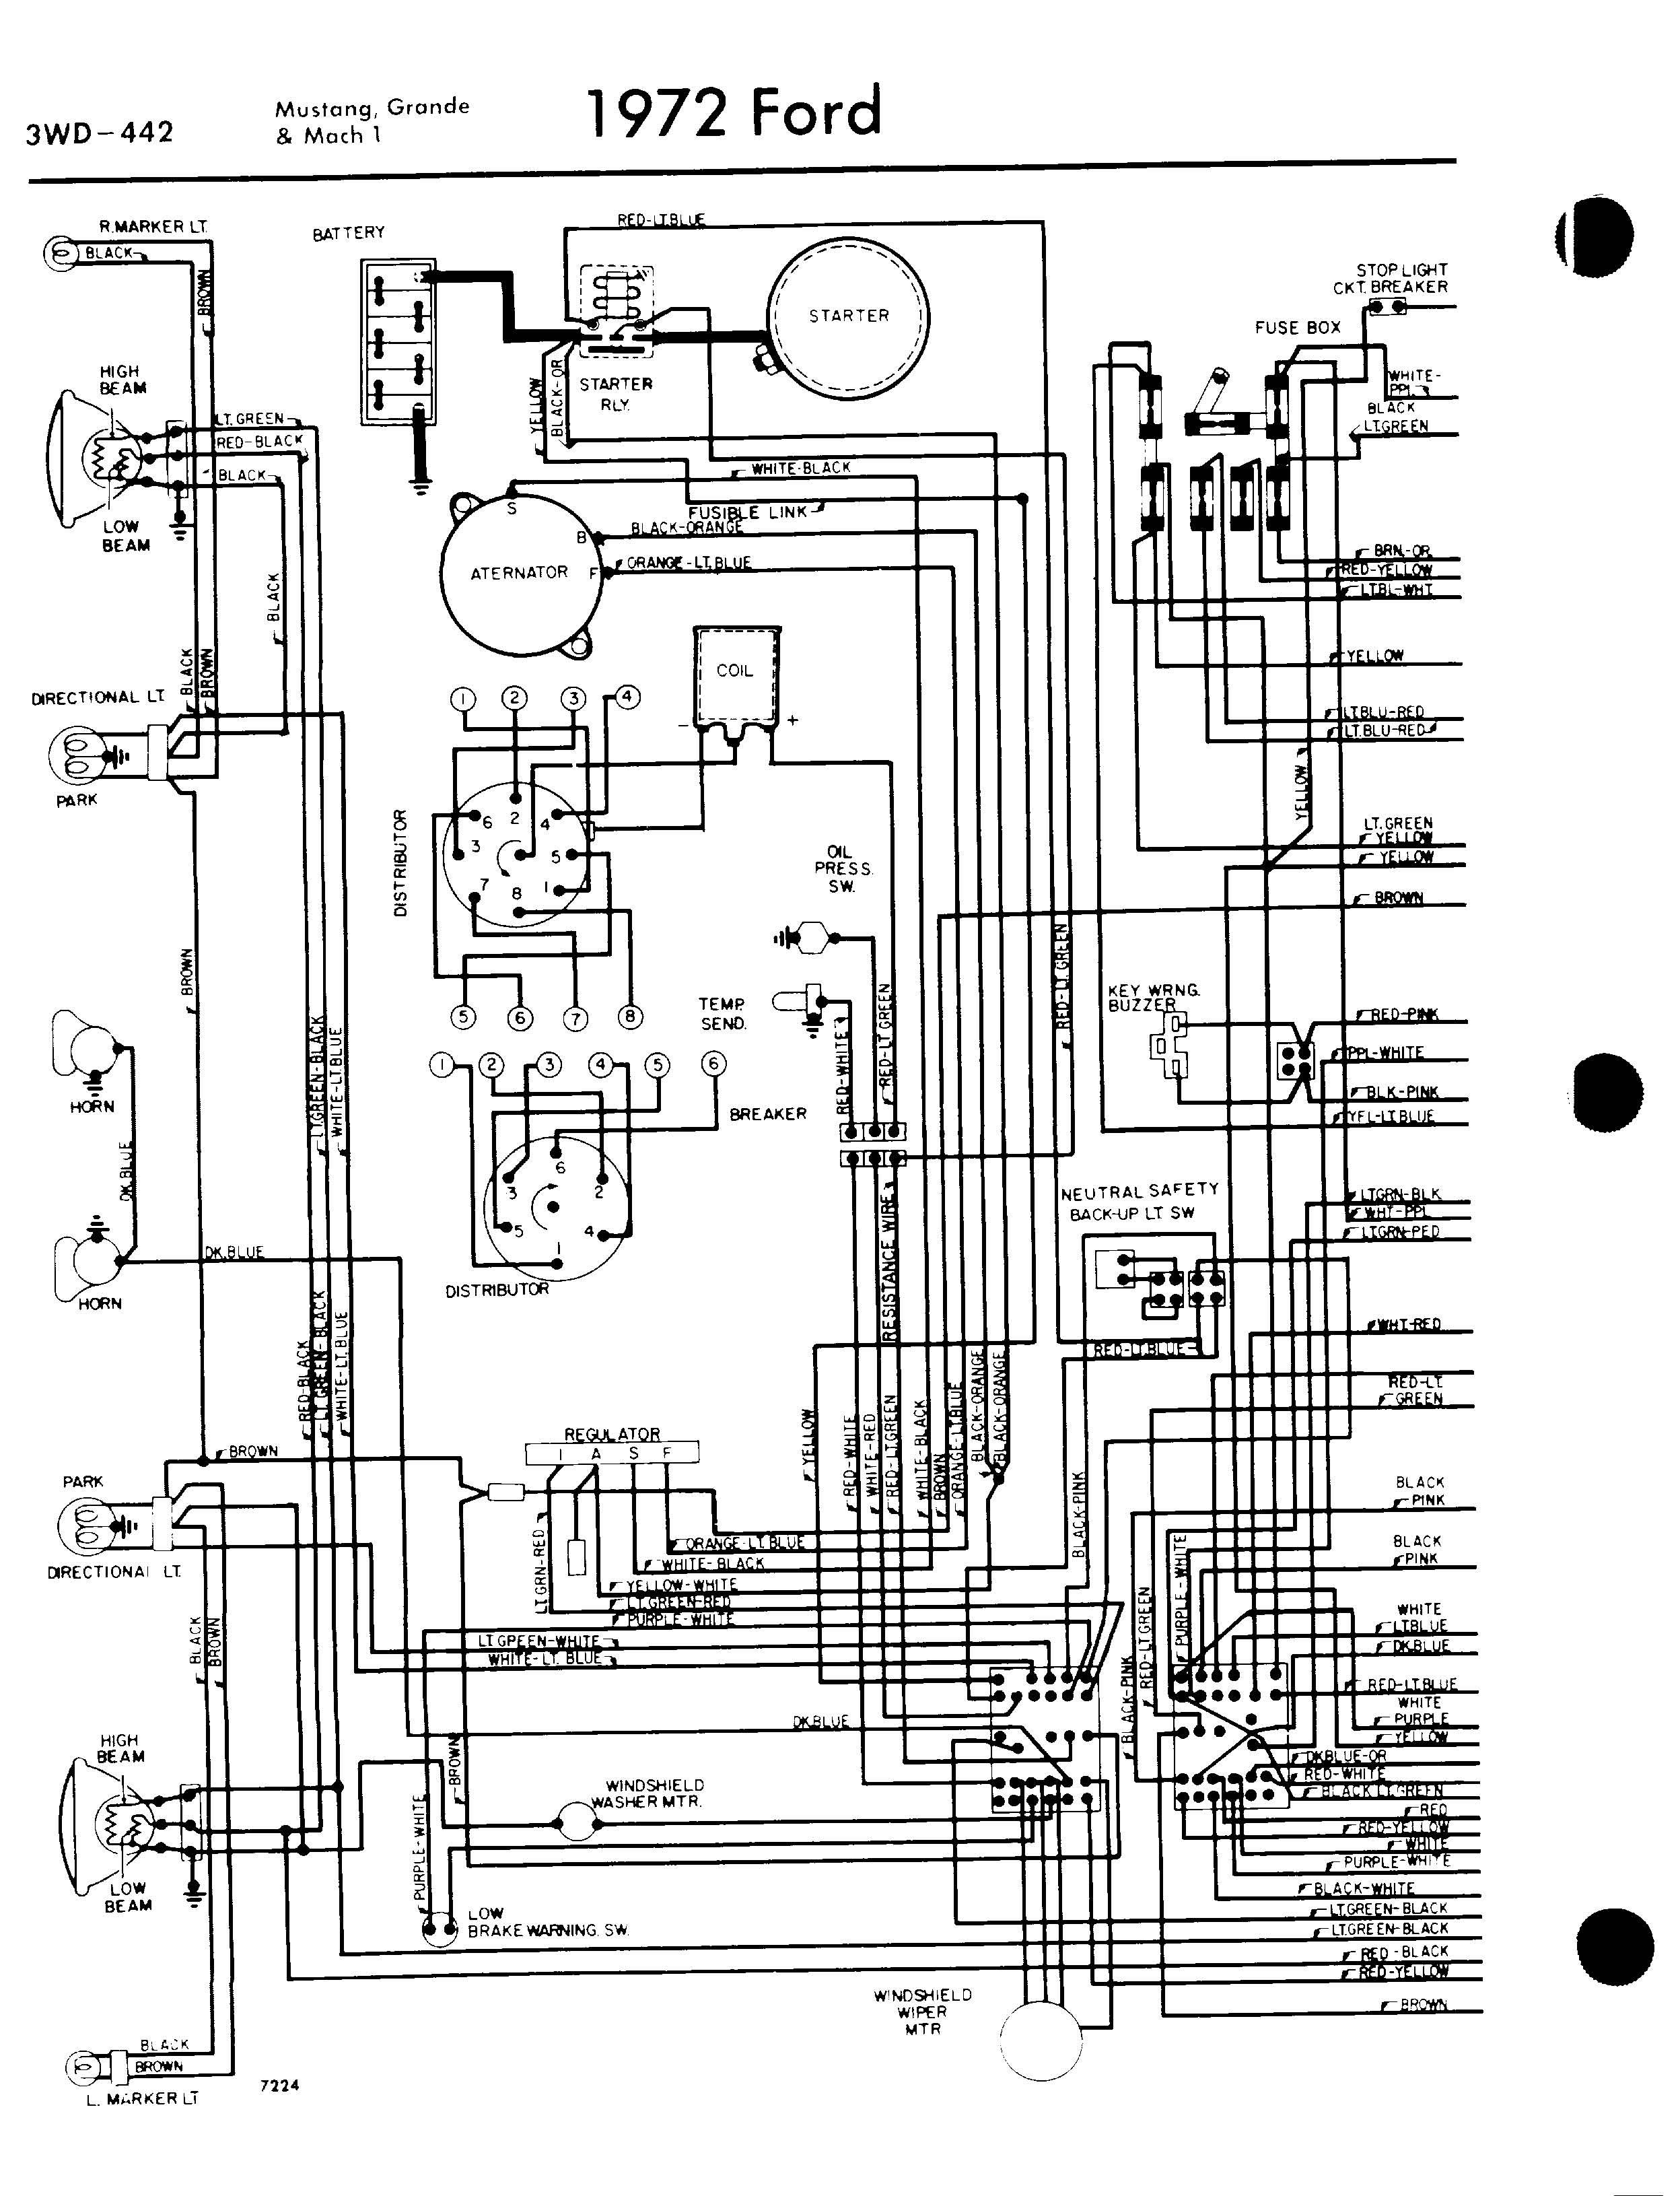 71af7a58e095e6a7716b32f1b23e8bd2 72 mach1 alternator wire harness diagram yahoo search results 1969 mustang alternator wiring diagram at n-0.co